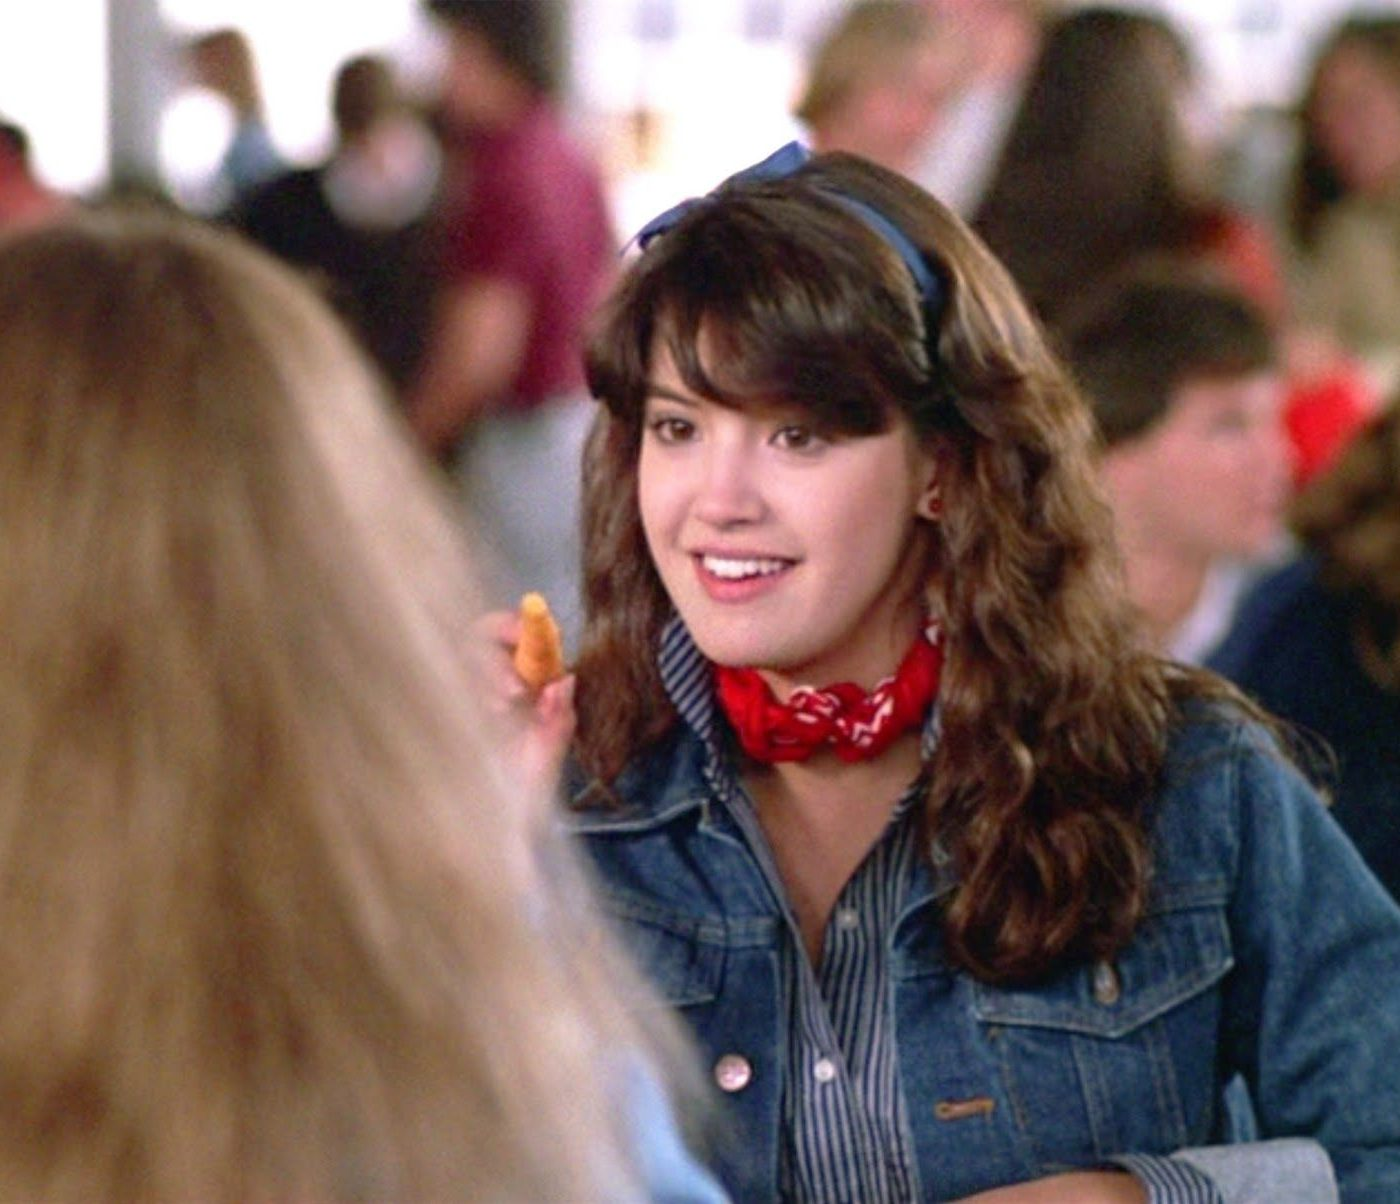 33 1 e1598359314654 25 Facts You Probably Never Knew About Fast Times At Ridgemont High!